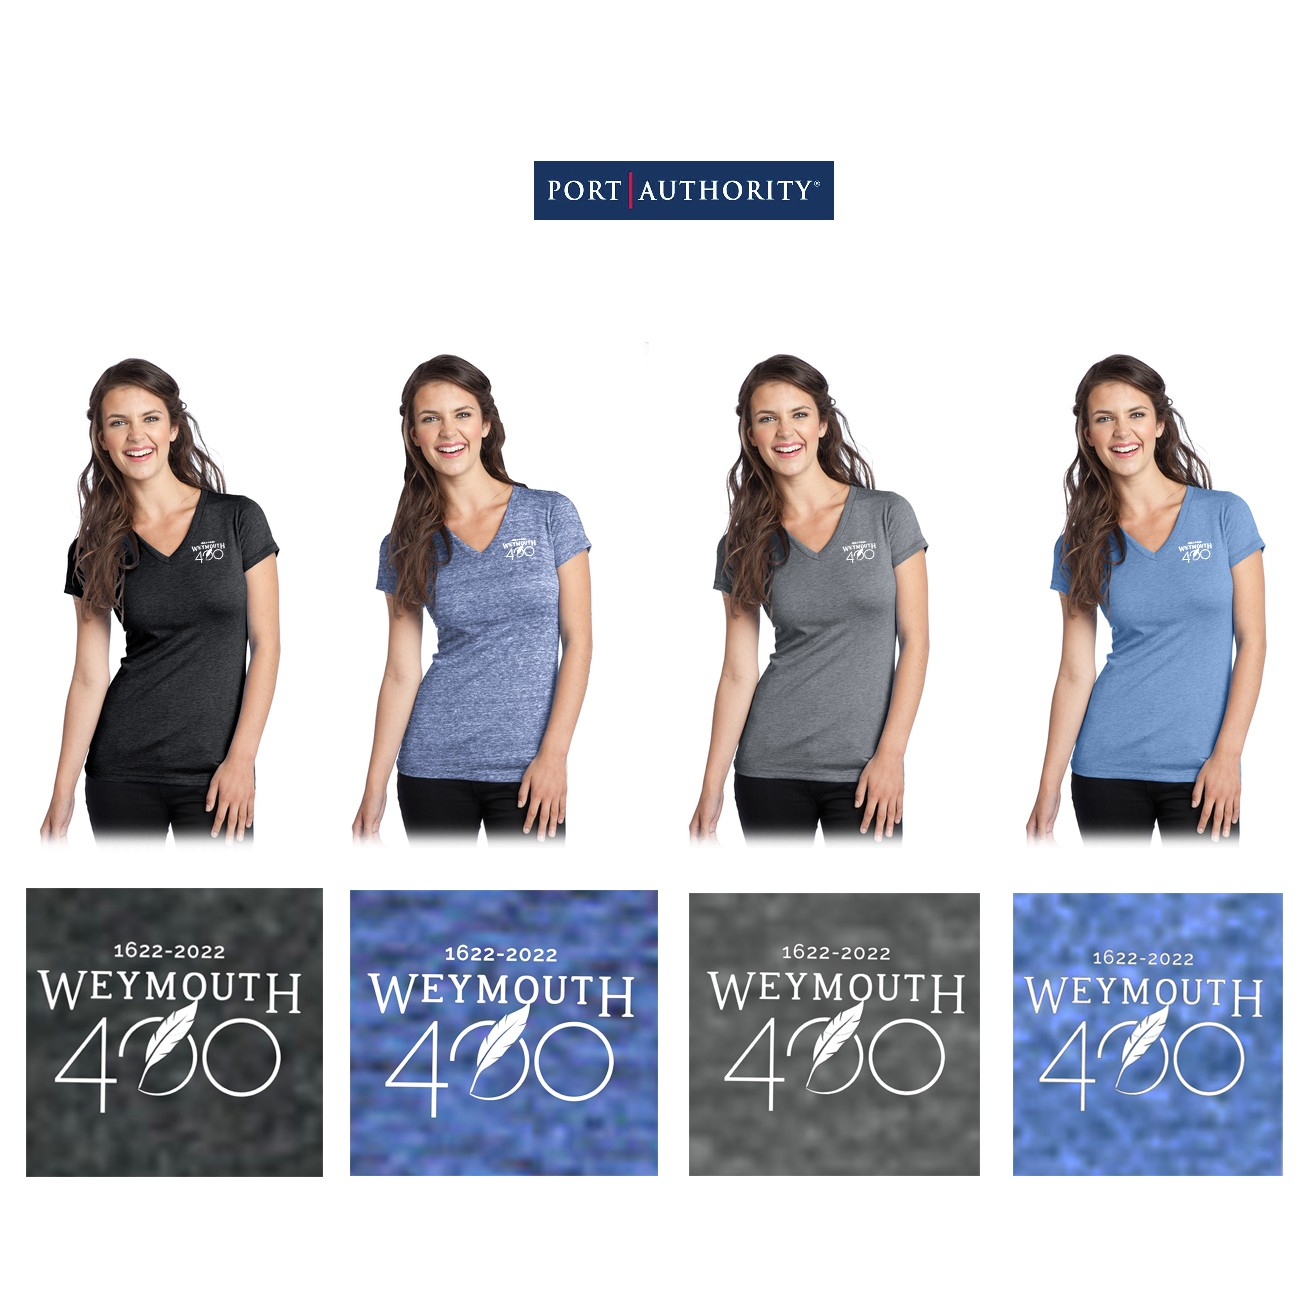 Weymouth 400 Port Authority District® Juniors Tri-Blend V-Neck Tee